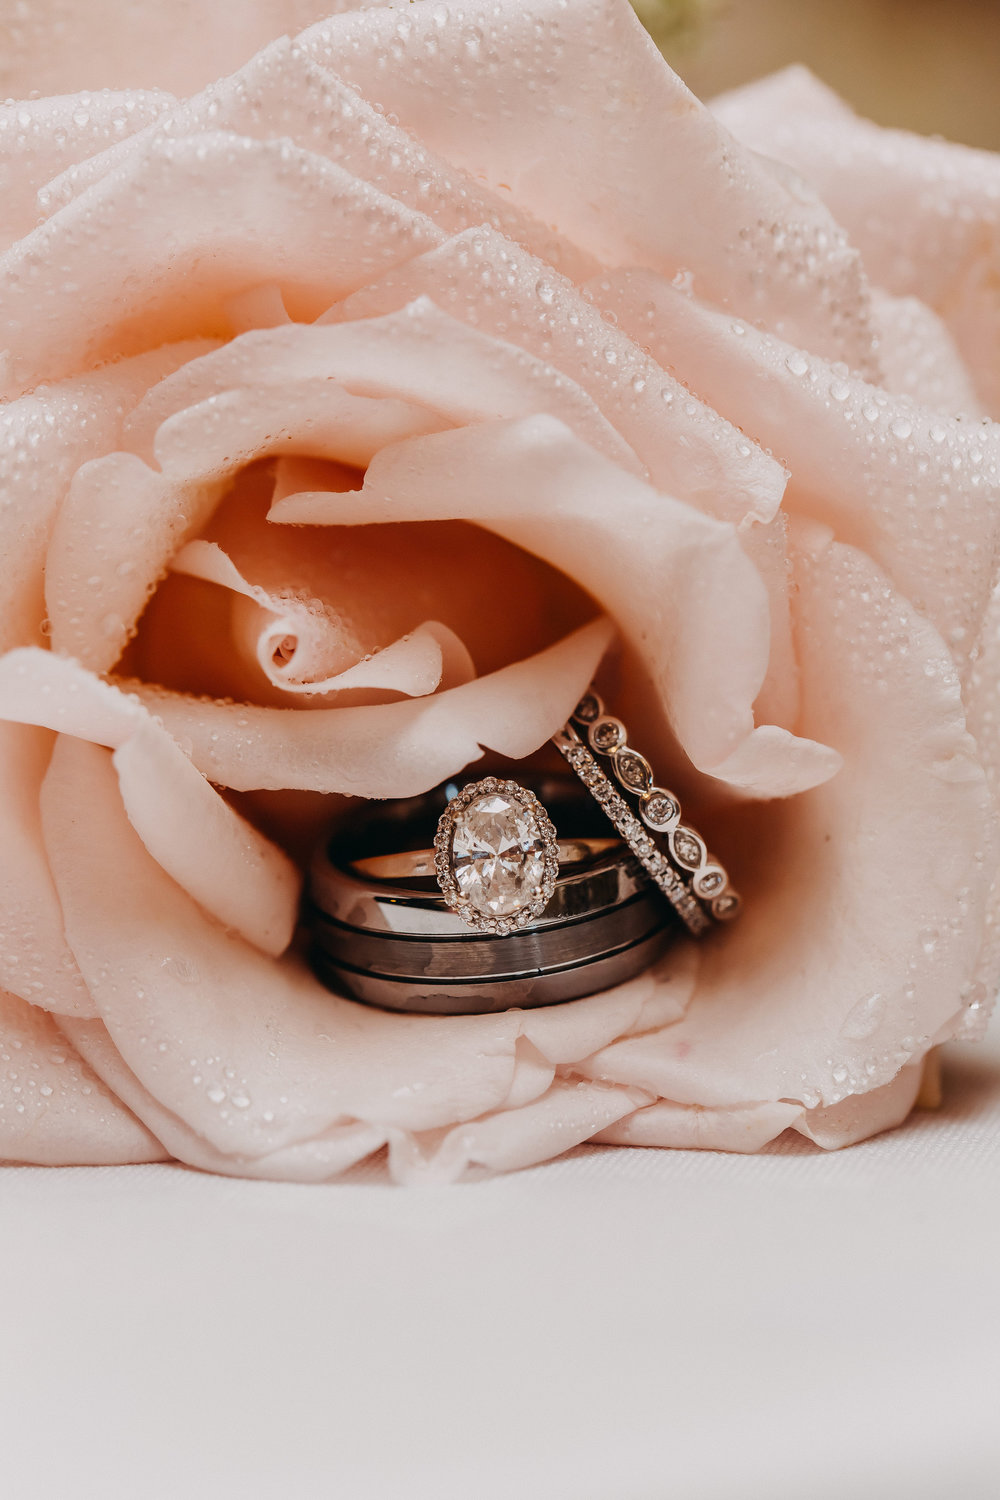 Solitaire Engagement Ring - Florida Estate Wedding - Powel Crowley Estate Wedding